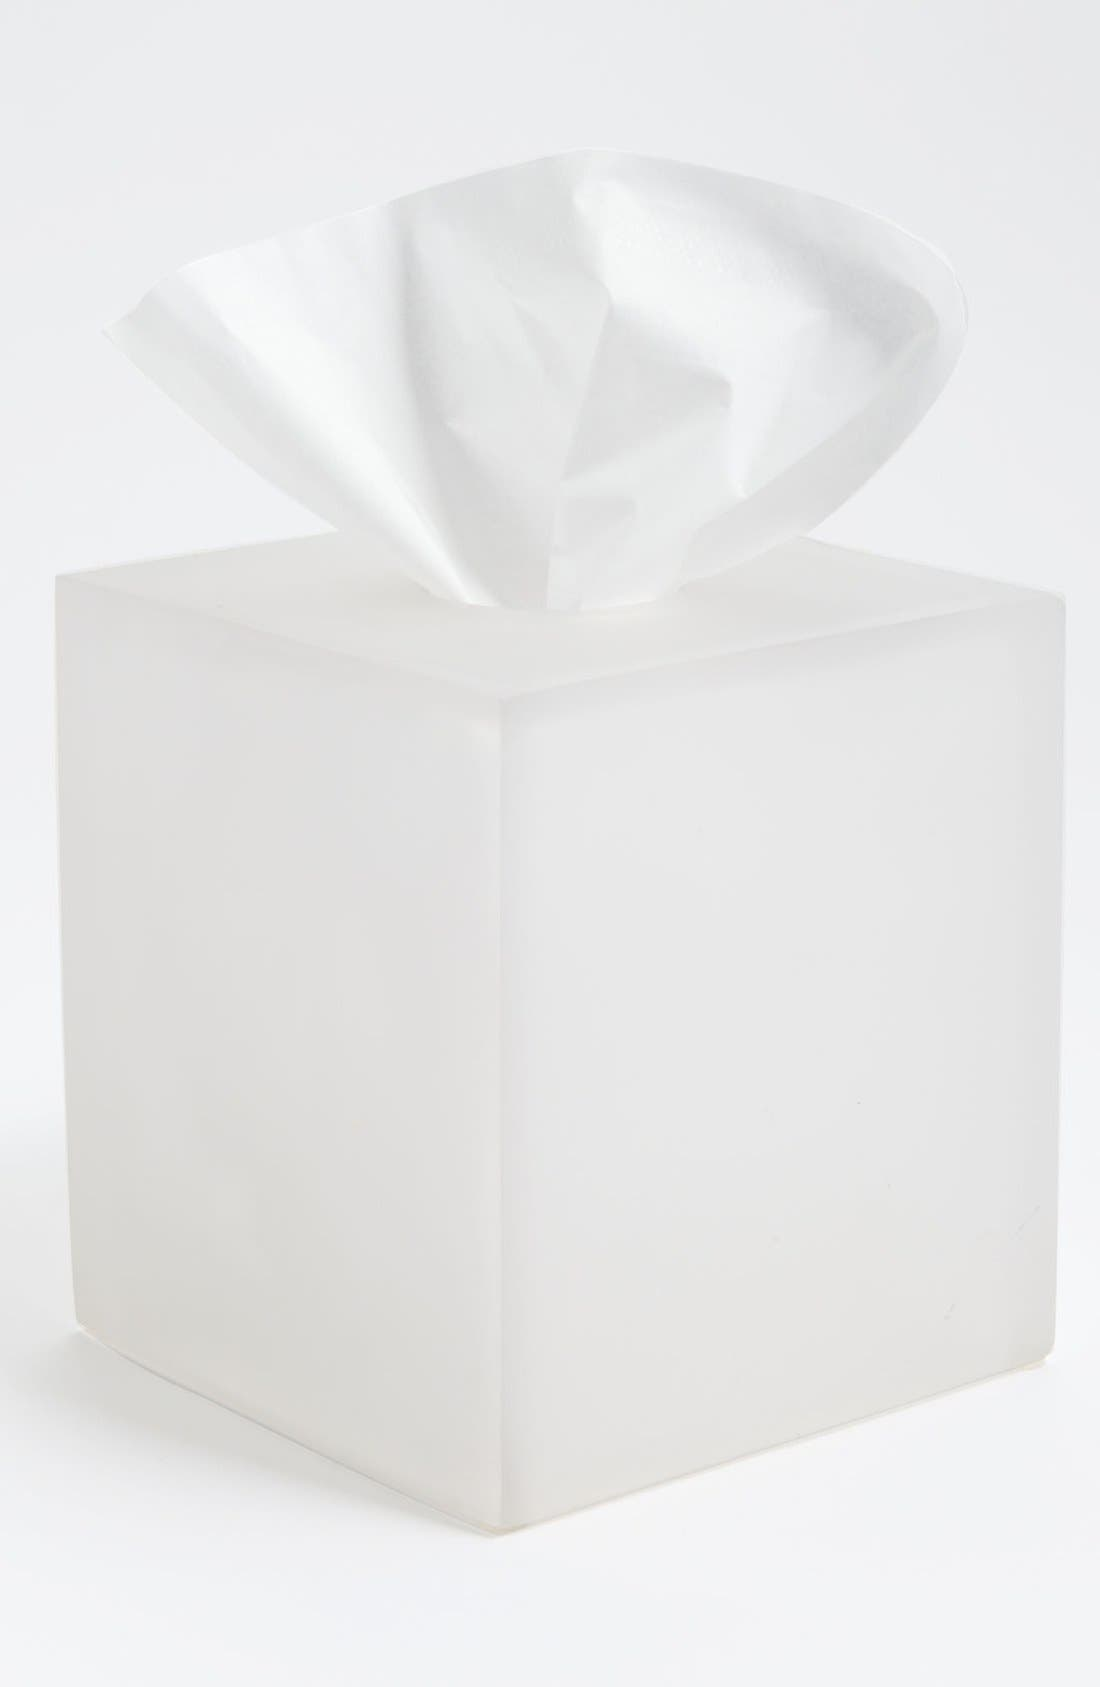 Alternate Image 1 Selected - Waterworks Studio 'Oxygen' Tissue Cover (Online Only)